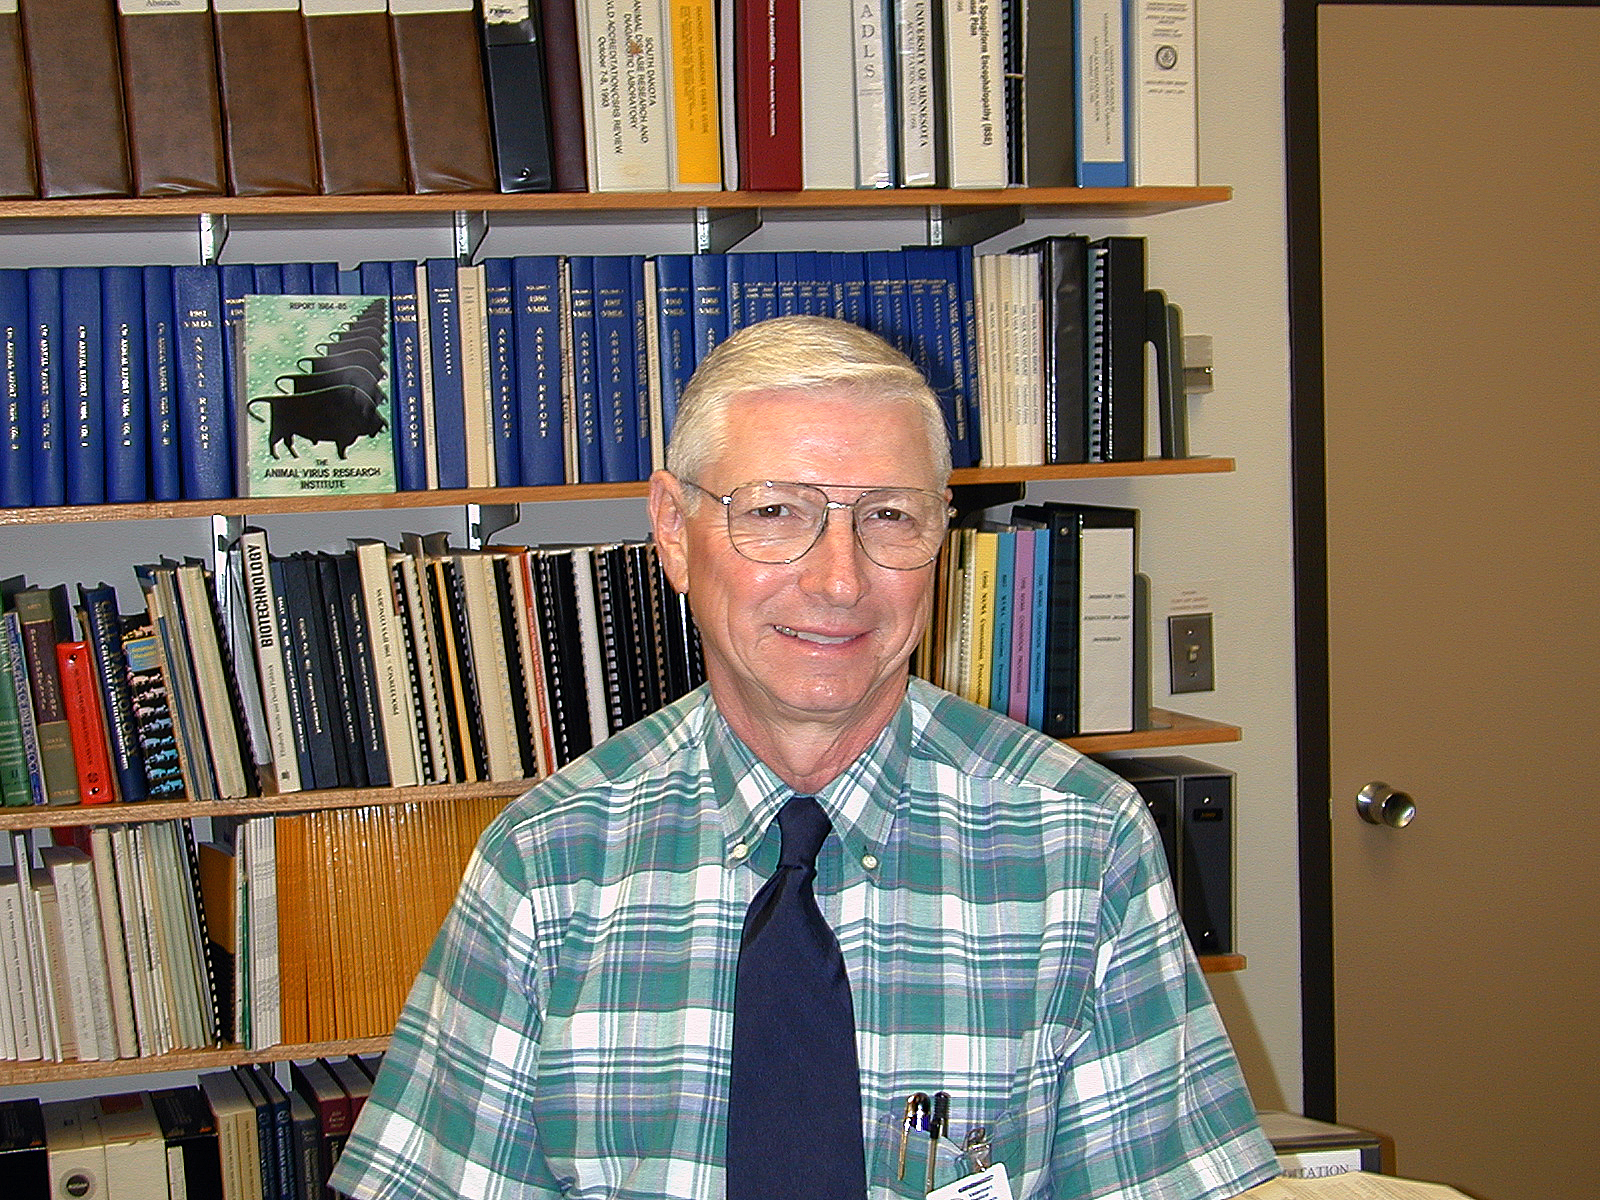 Harvey S. Gosser, DVM, MS, PhD